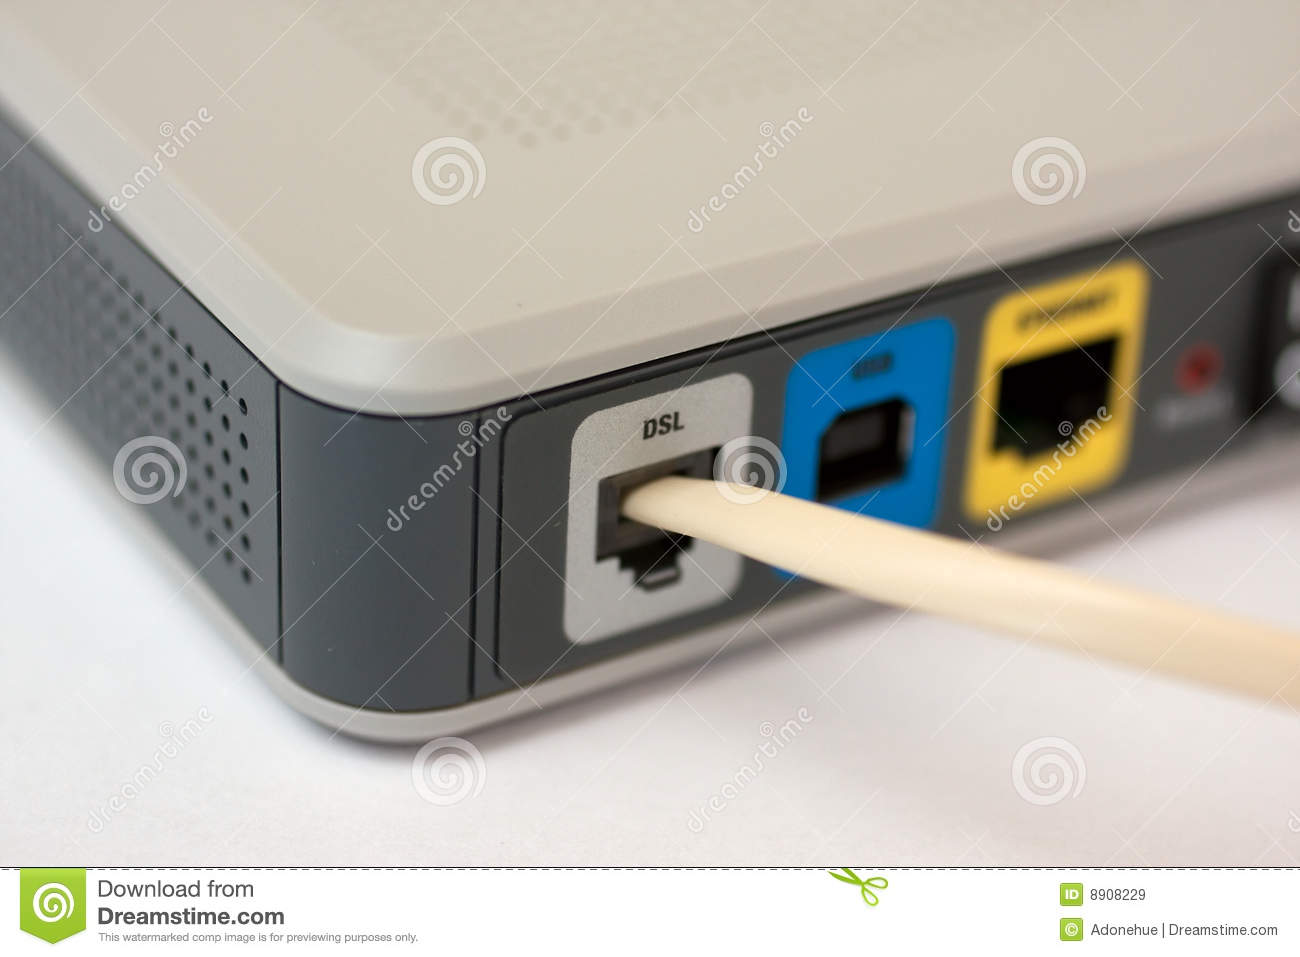 how to connect steve modem wired